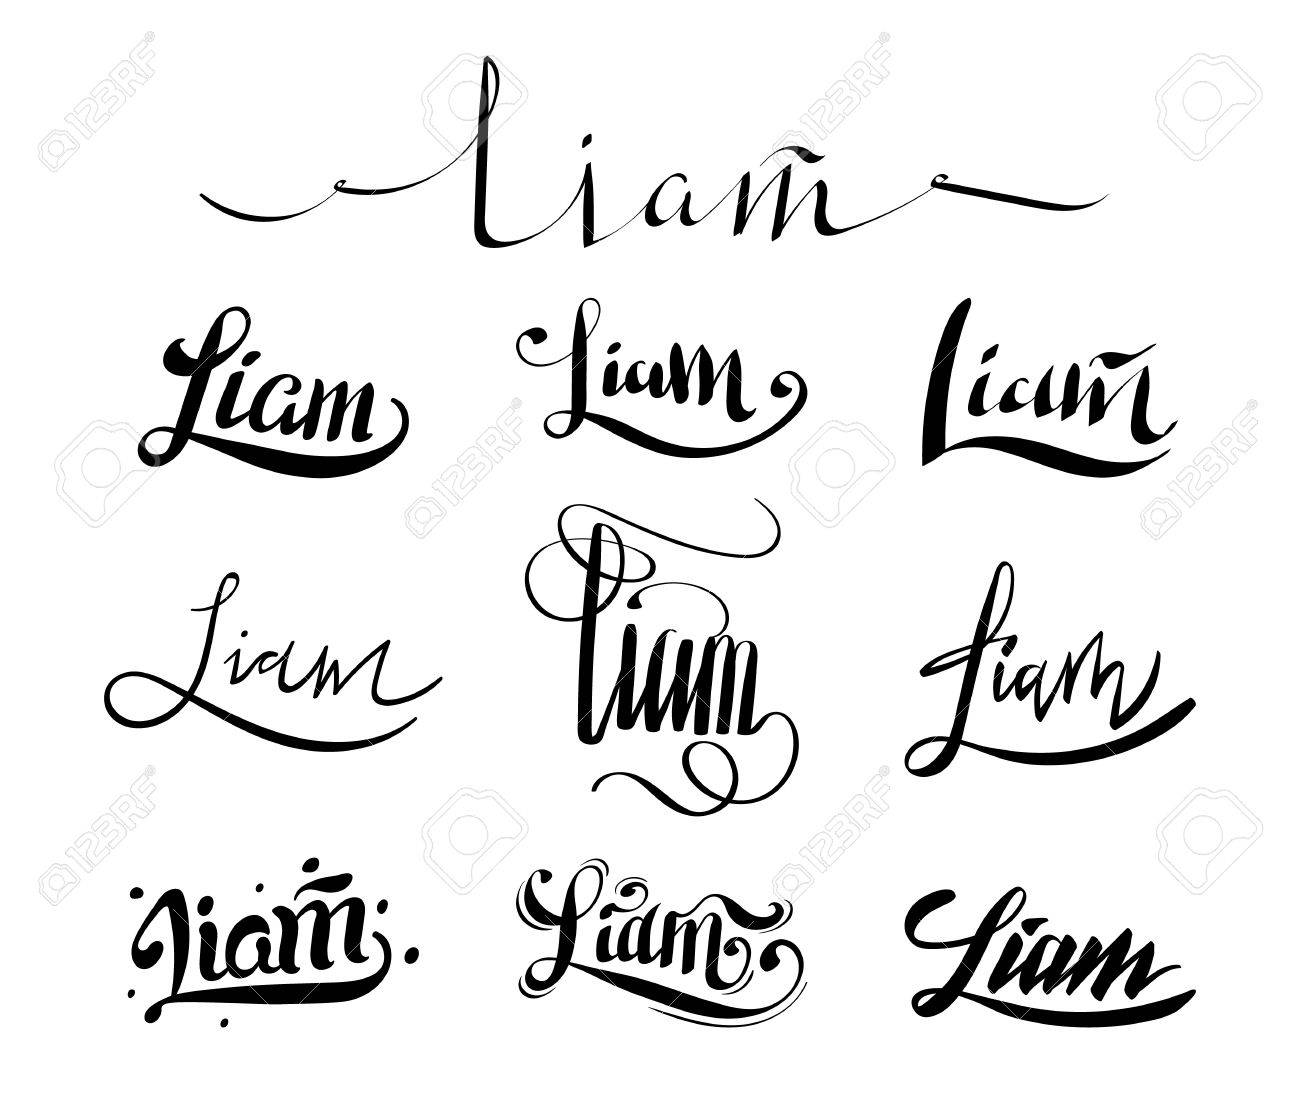 Calligraphy Tattoo Picture Personal Name Liam Vector Handwritten Calligraphy Tattoo Design